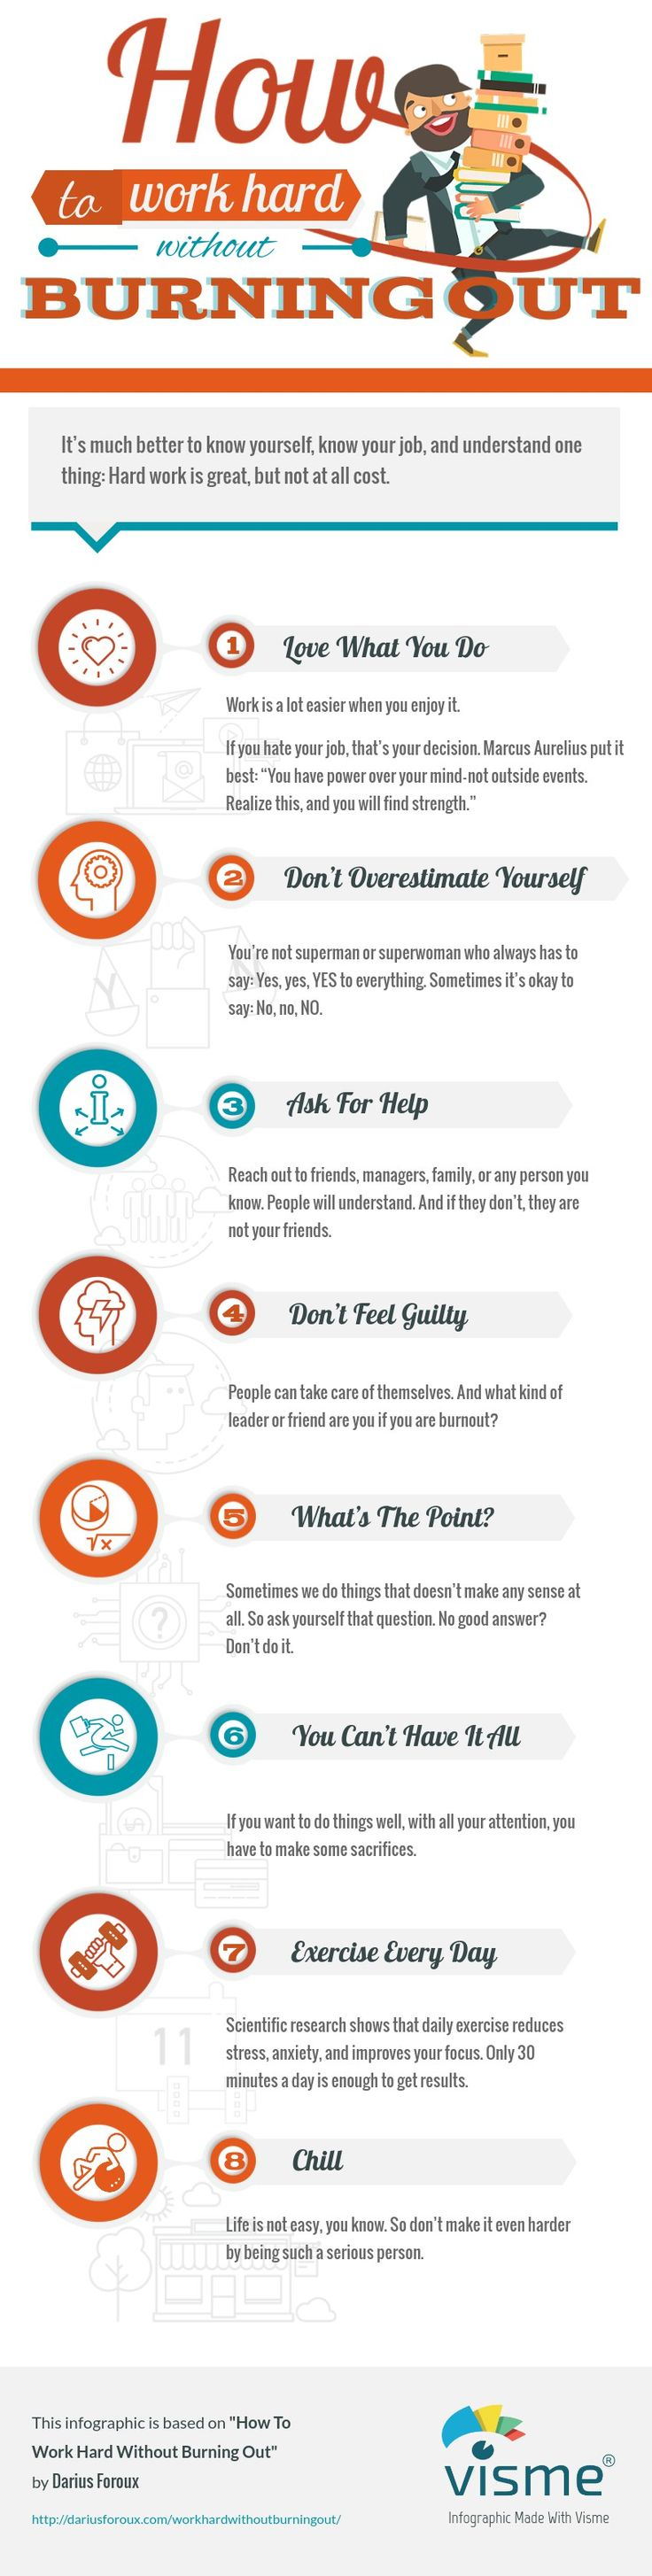 17 best ideas about how to work hard to work good how to work hard out burning out infographic